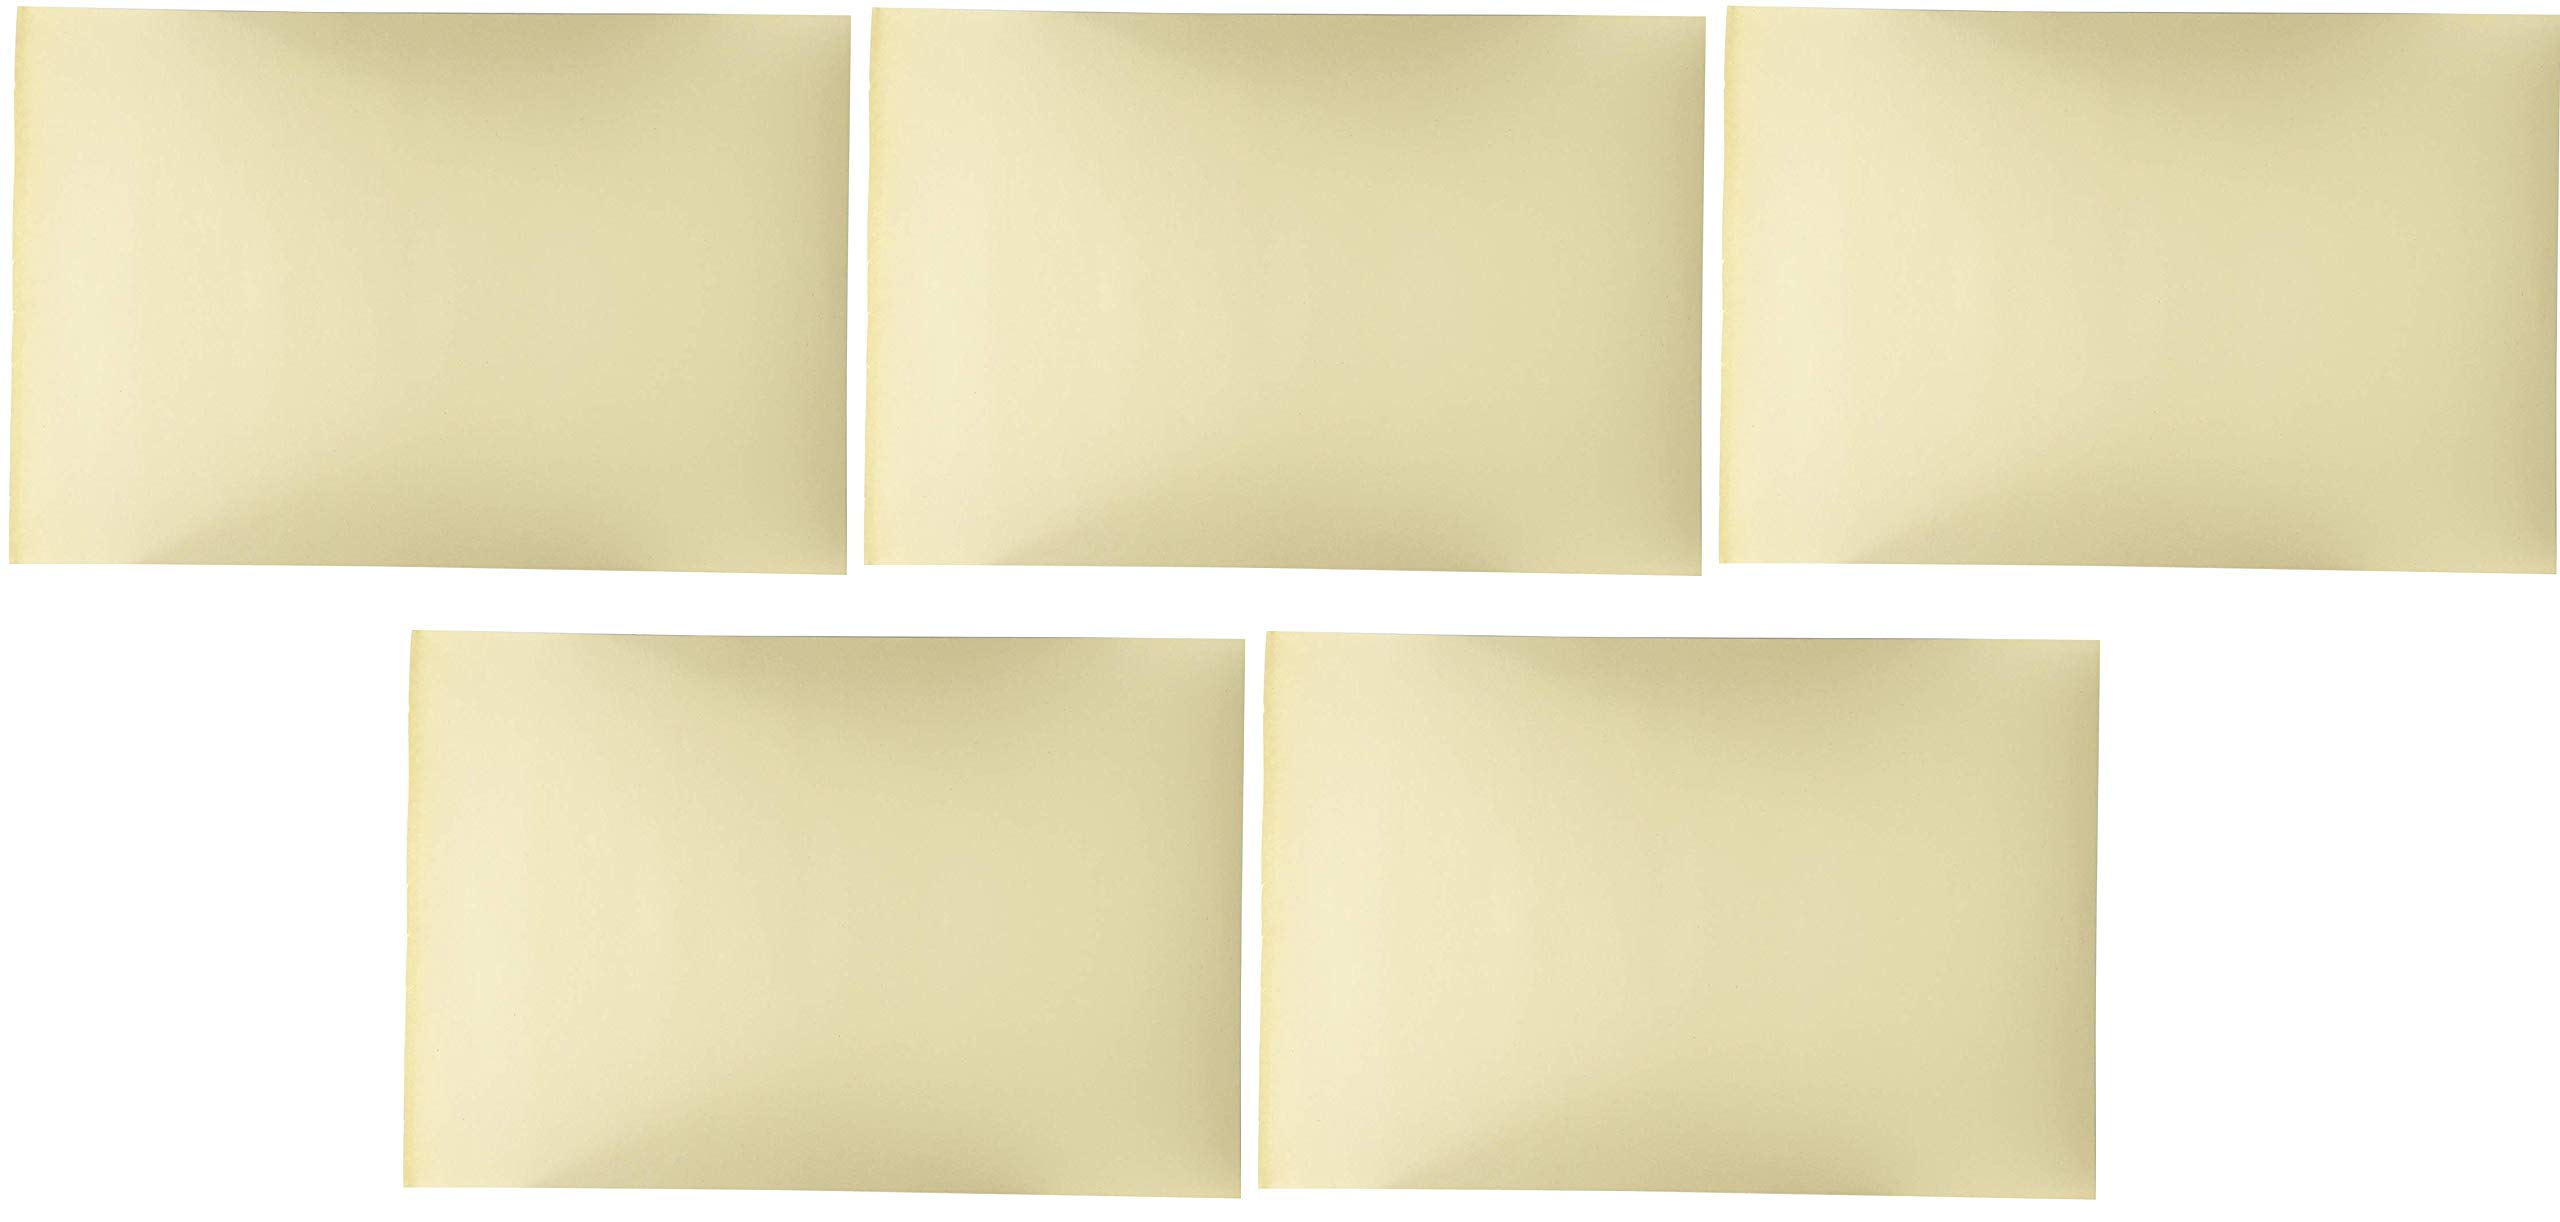 Sax Manila Drawing Paper, 40 lb, 12 x 18 Inches, Pack of 500 (Вundlе оf Fіvе) by Sax